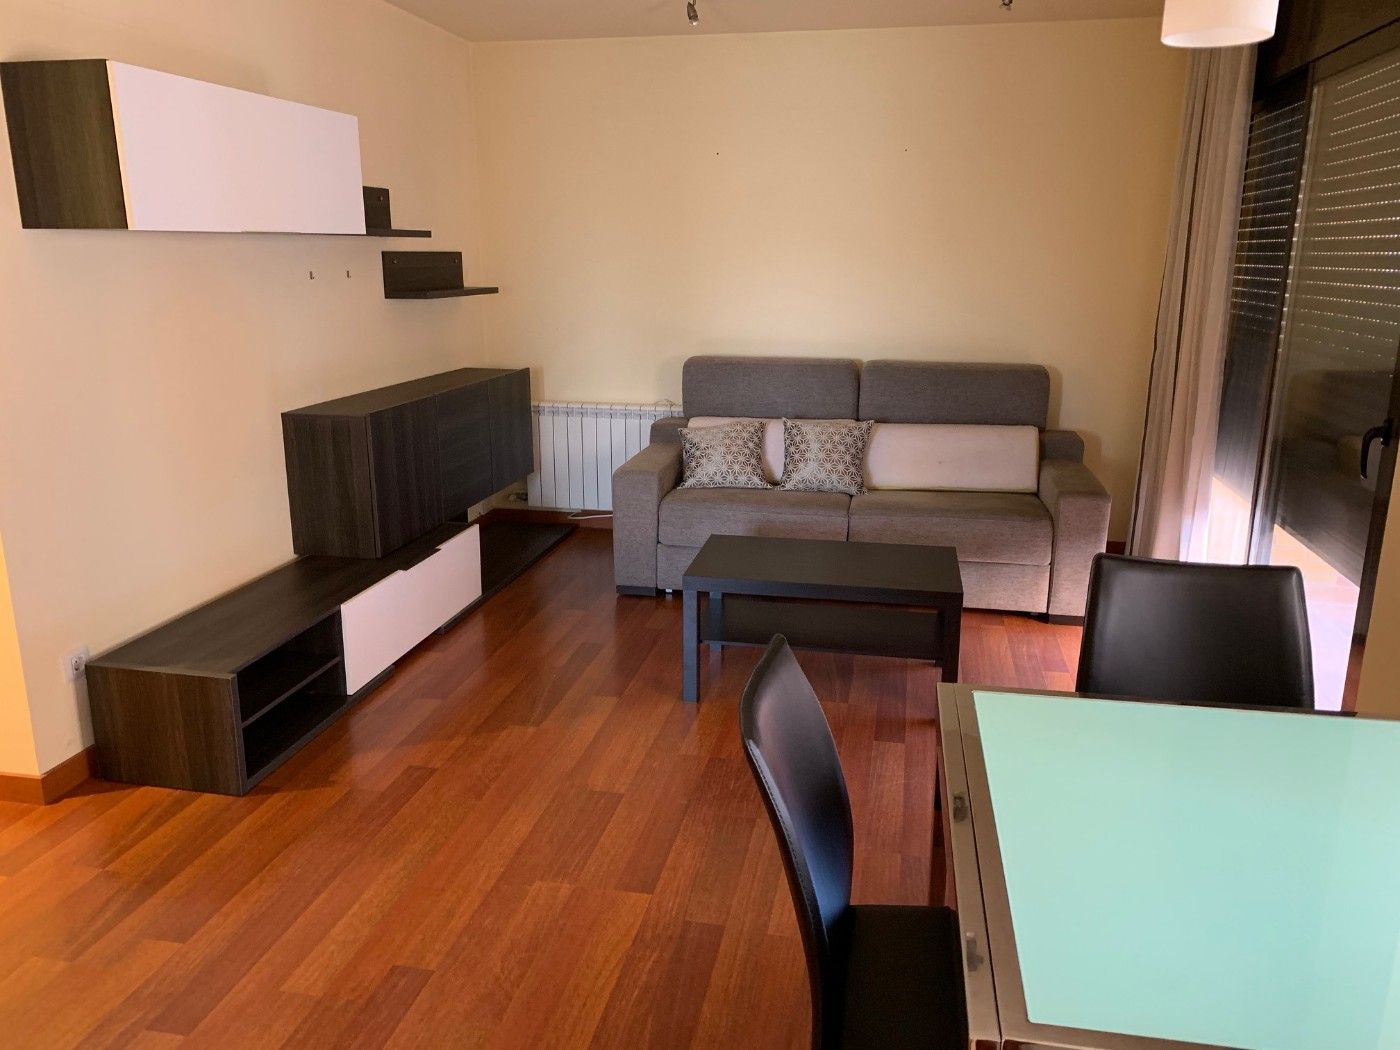 Location Appartement  Carrer eix onze de setembre. Impecable